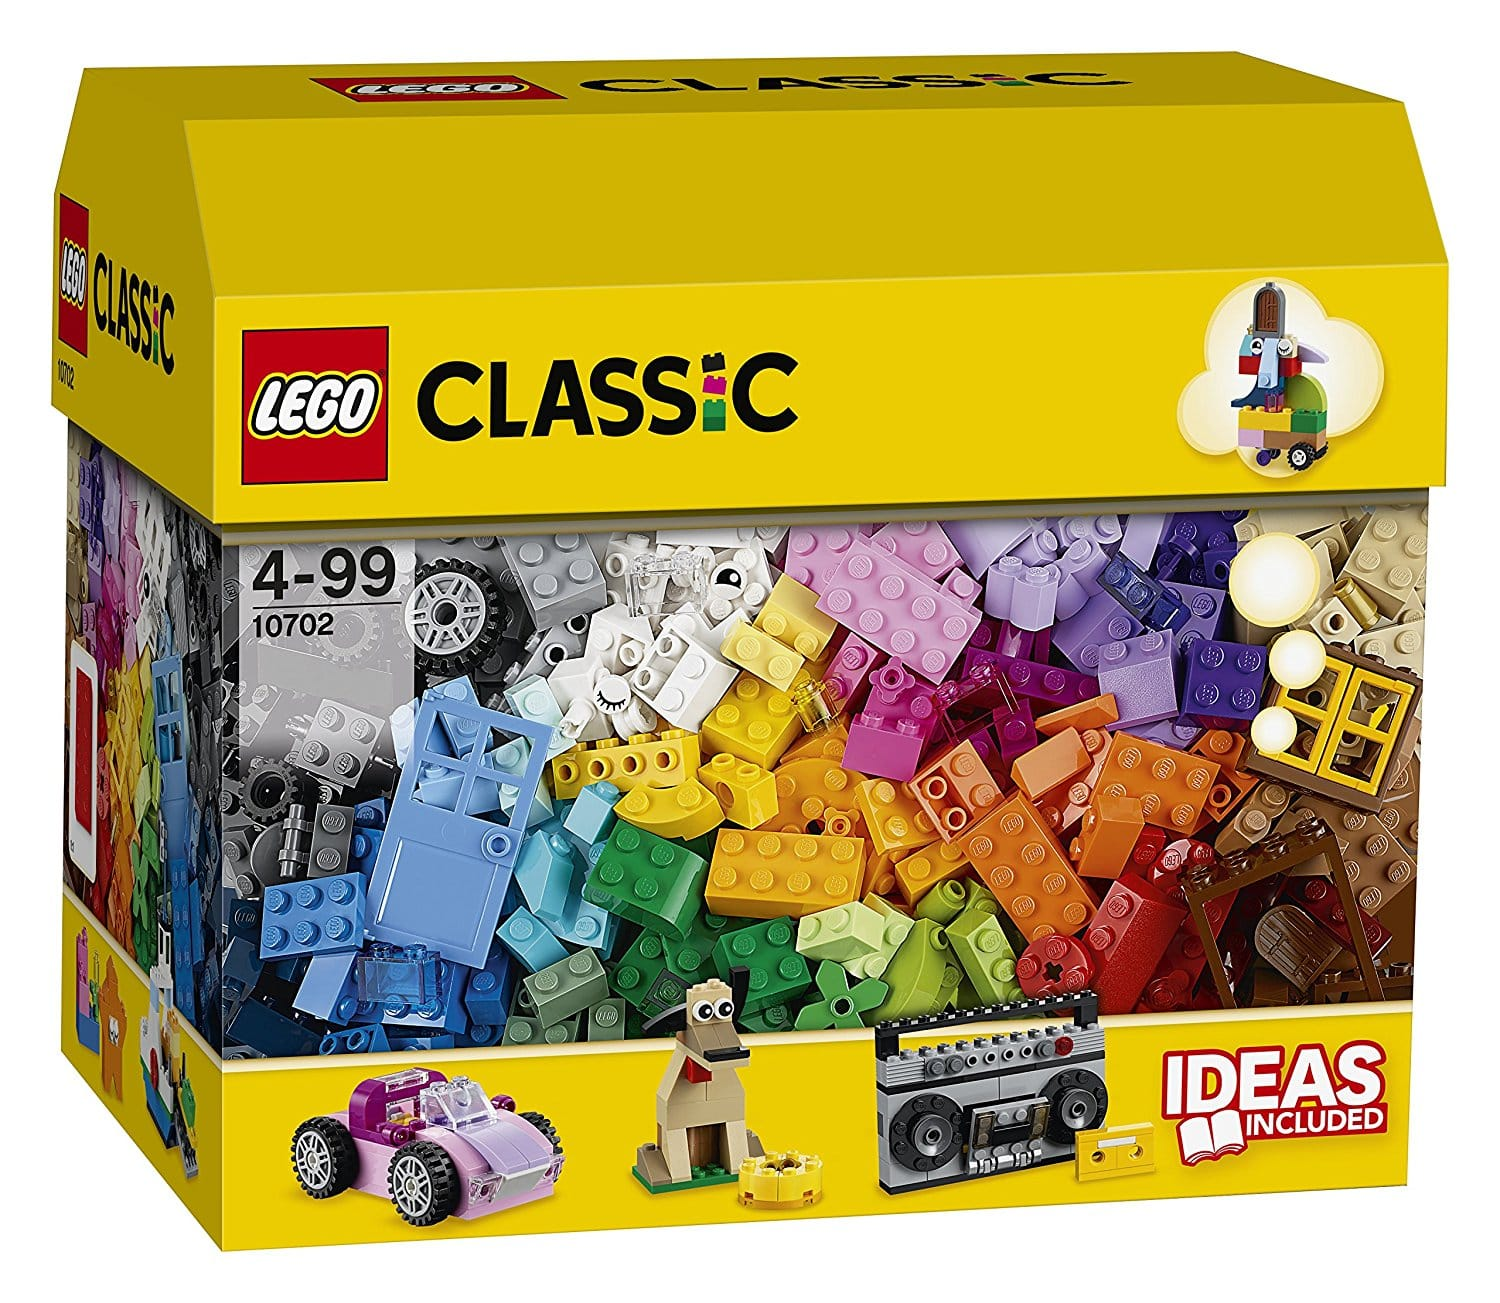 Lego classic creative building set 10702 (583 pieces) only $19 $18.86